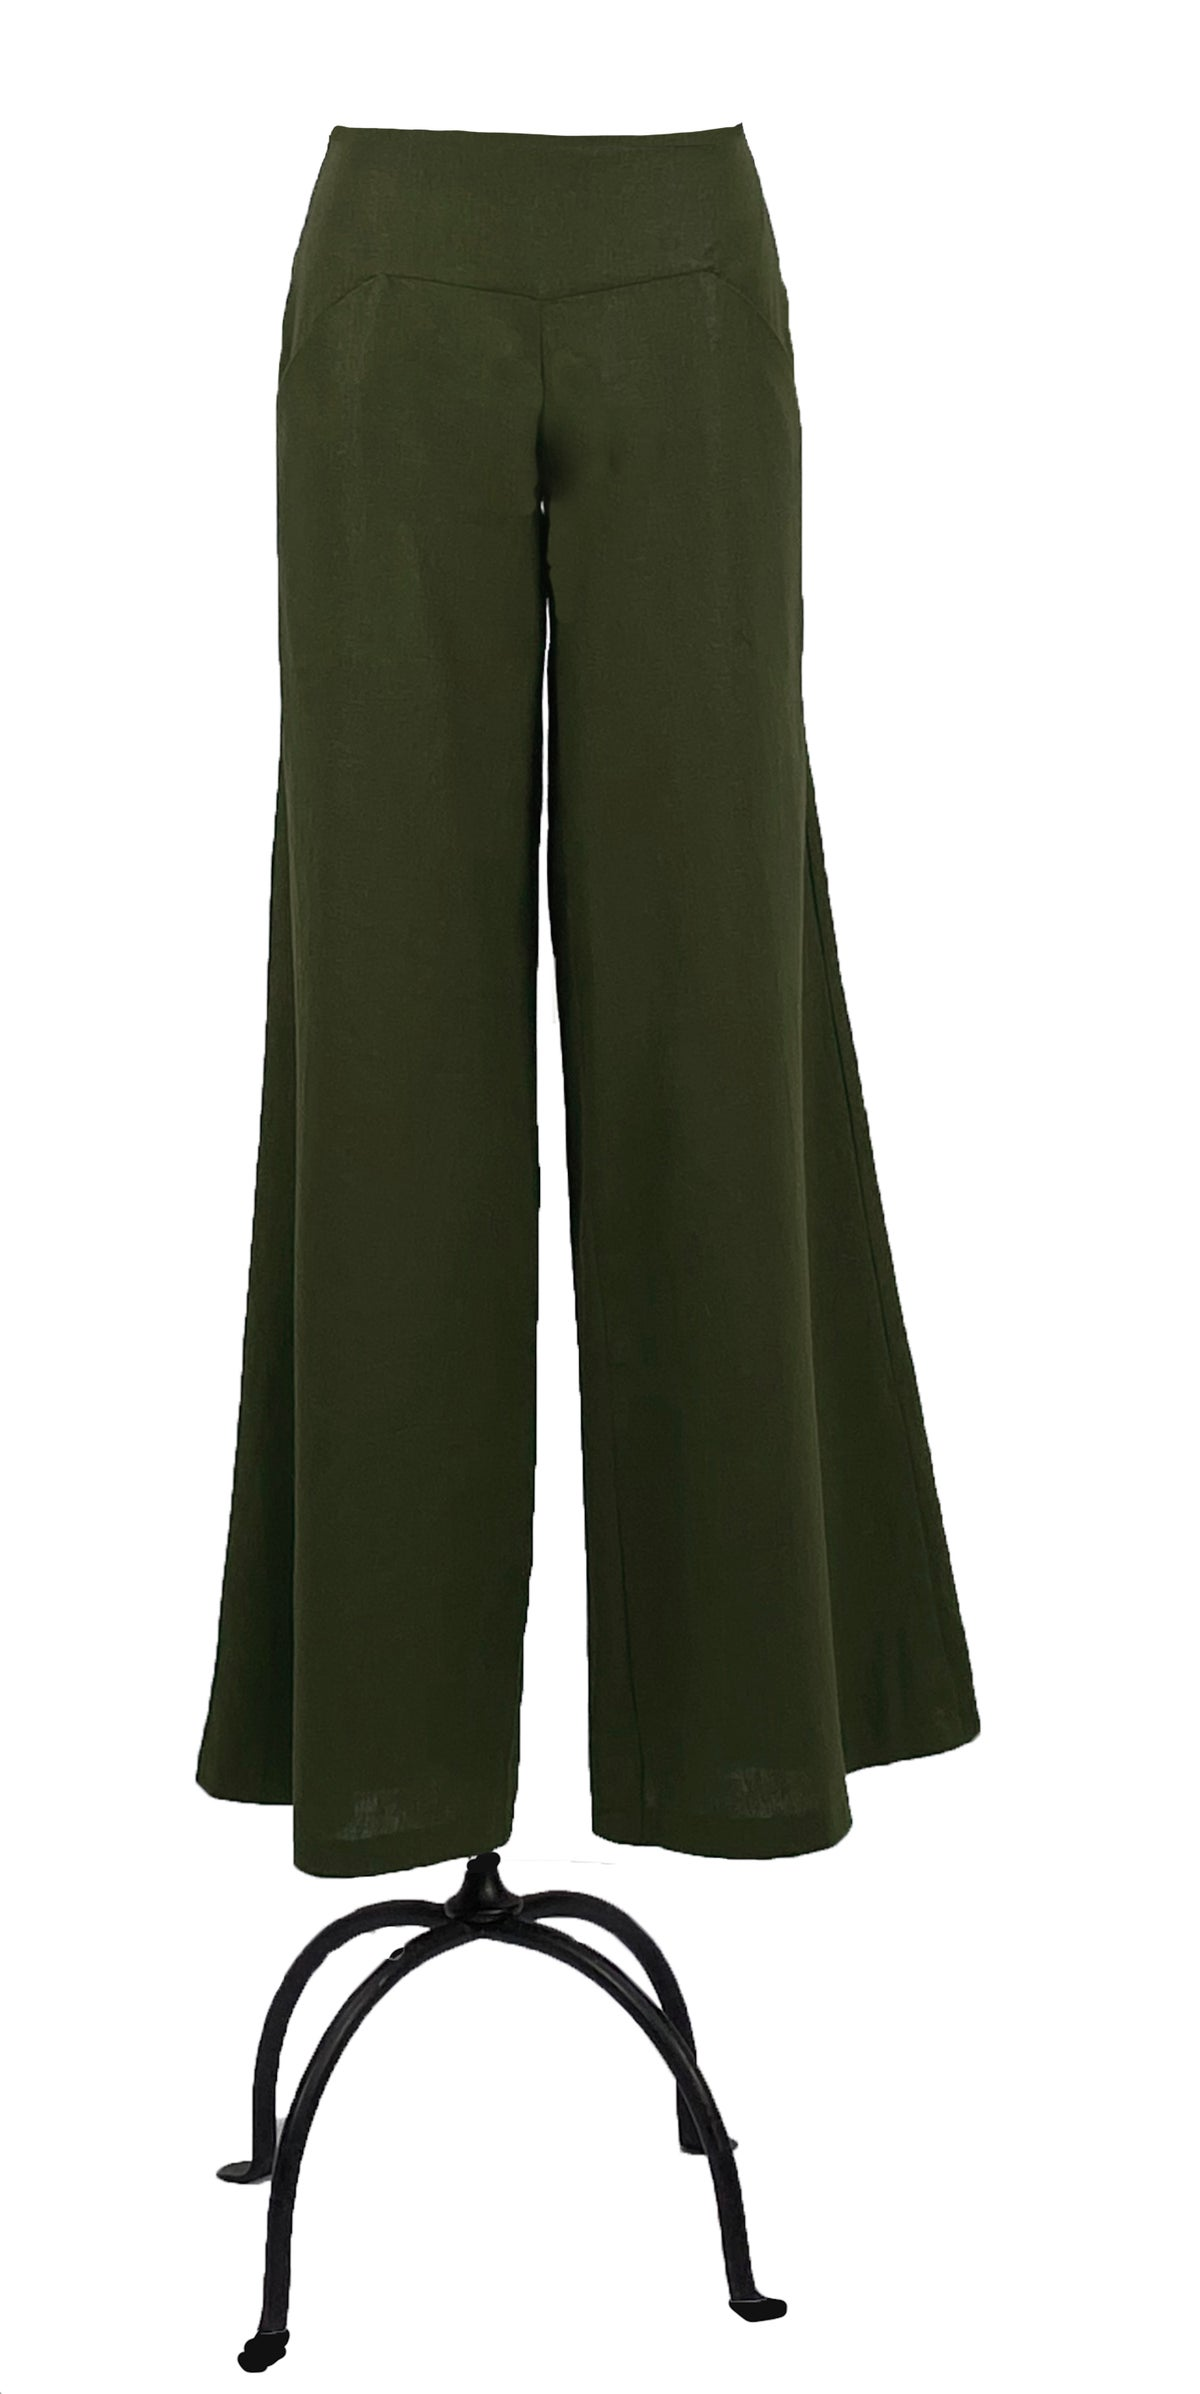 Image of Aquafina pants olive